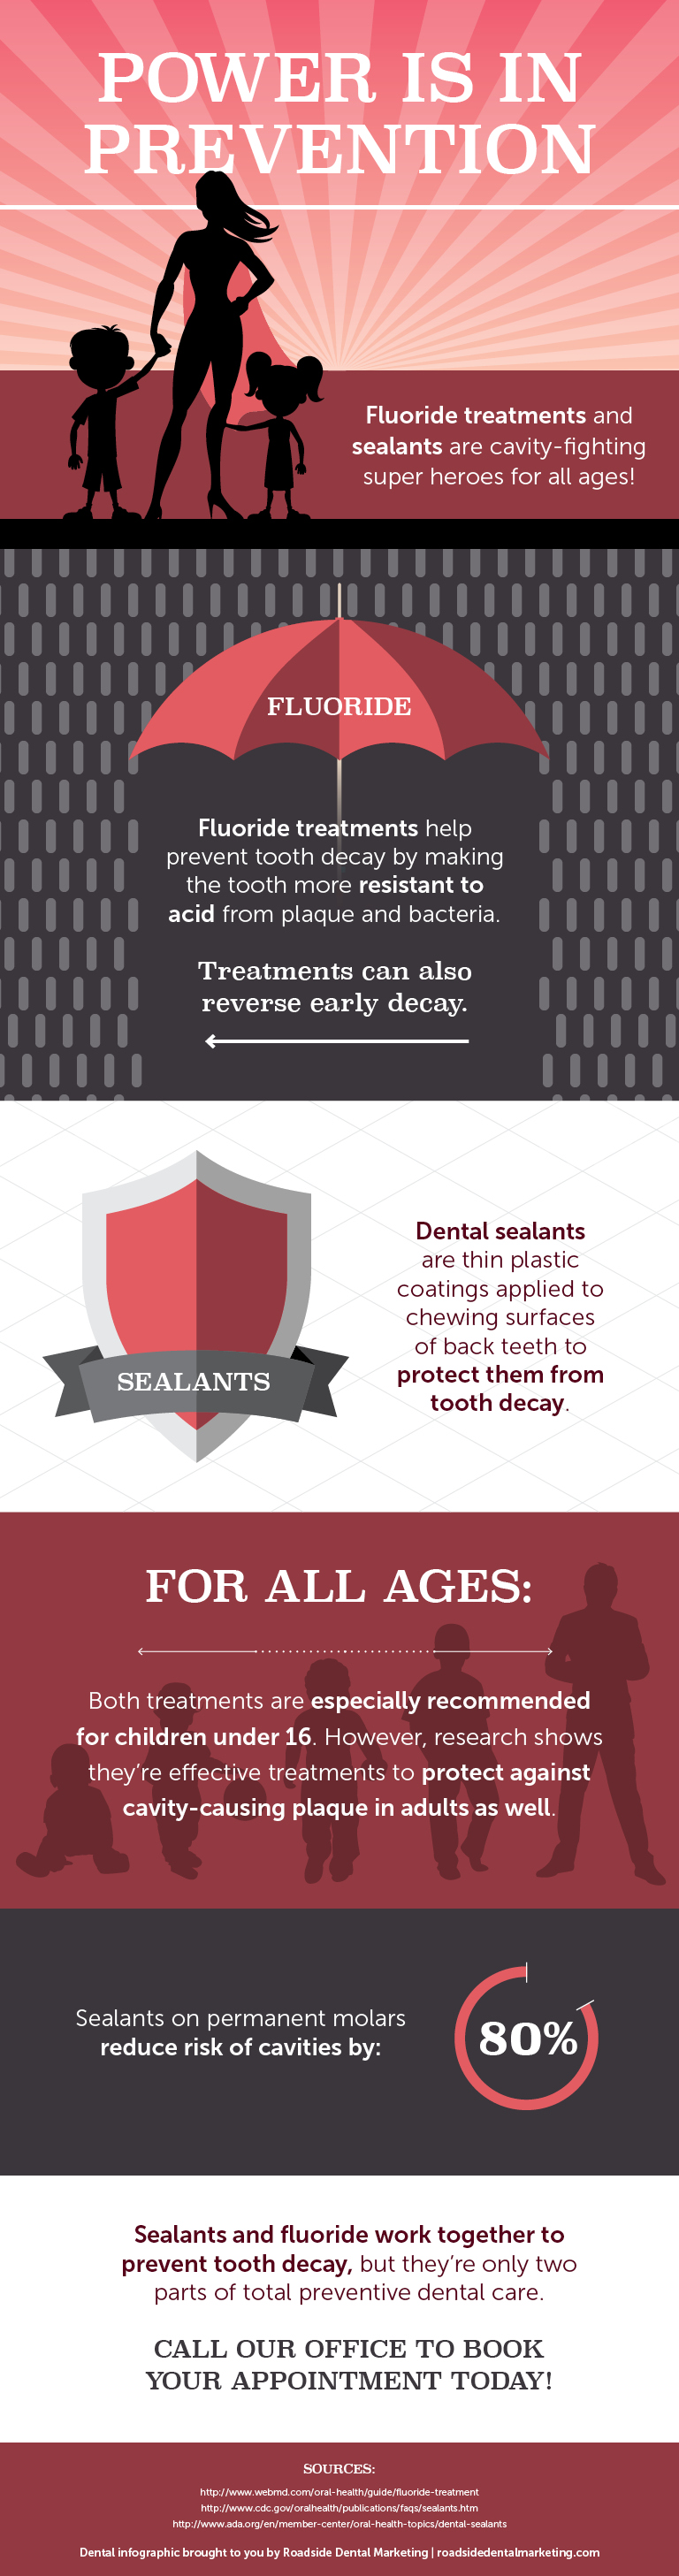 Learn how fluoride and sealants can aid in cavity prevention for kids and adults.